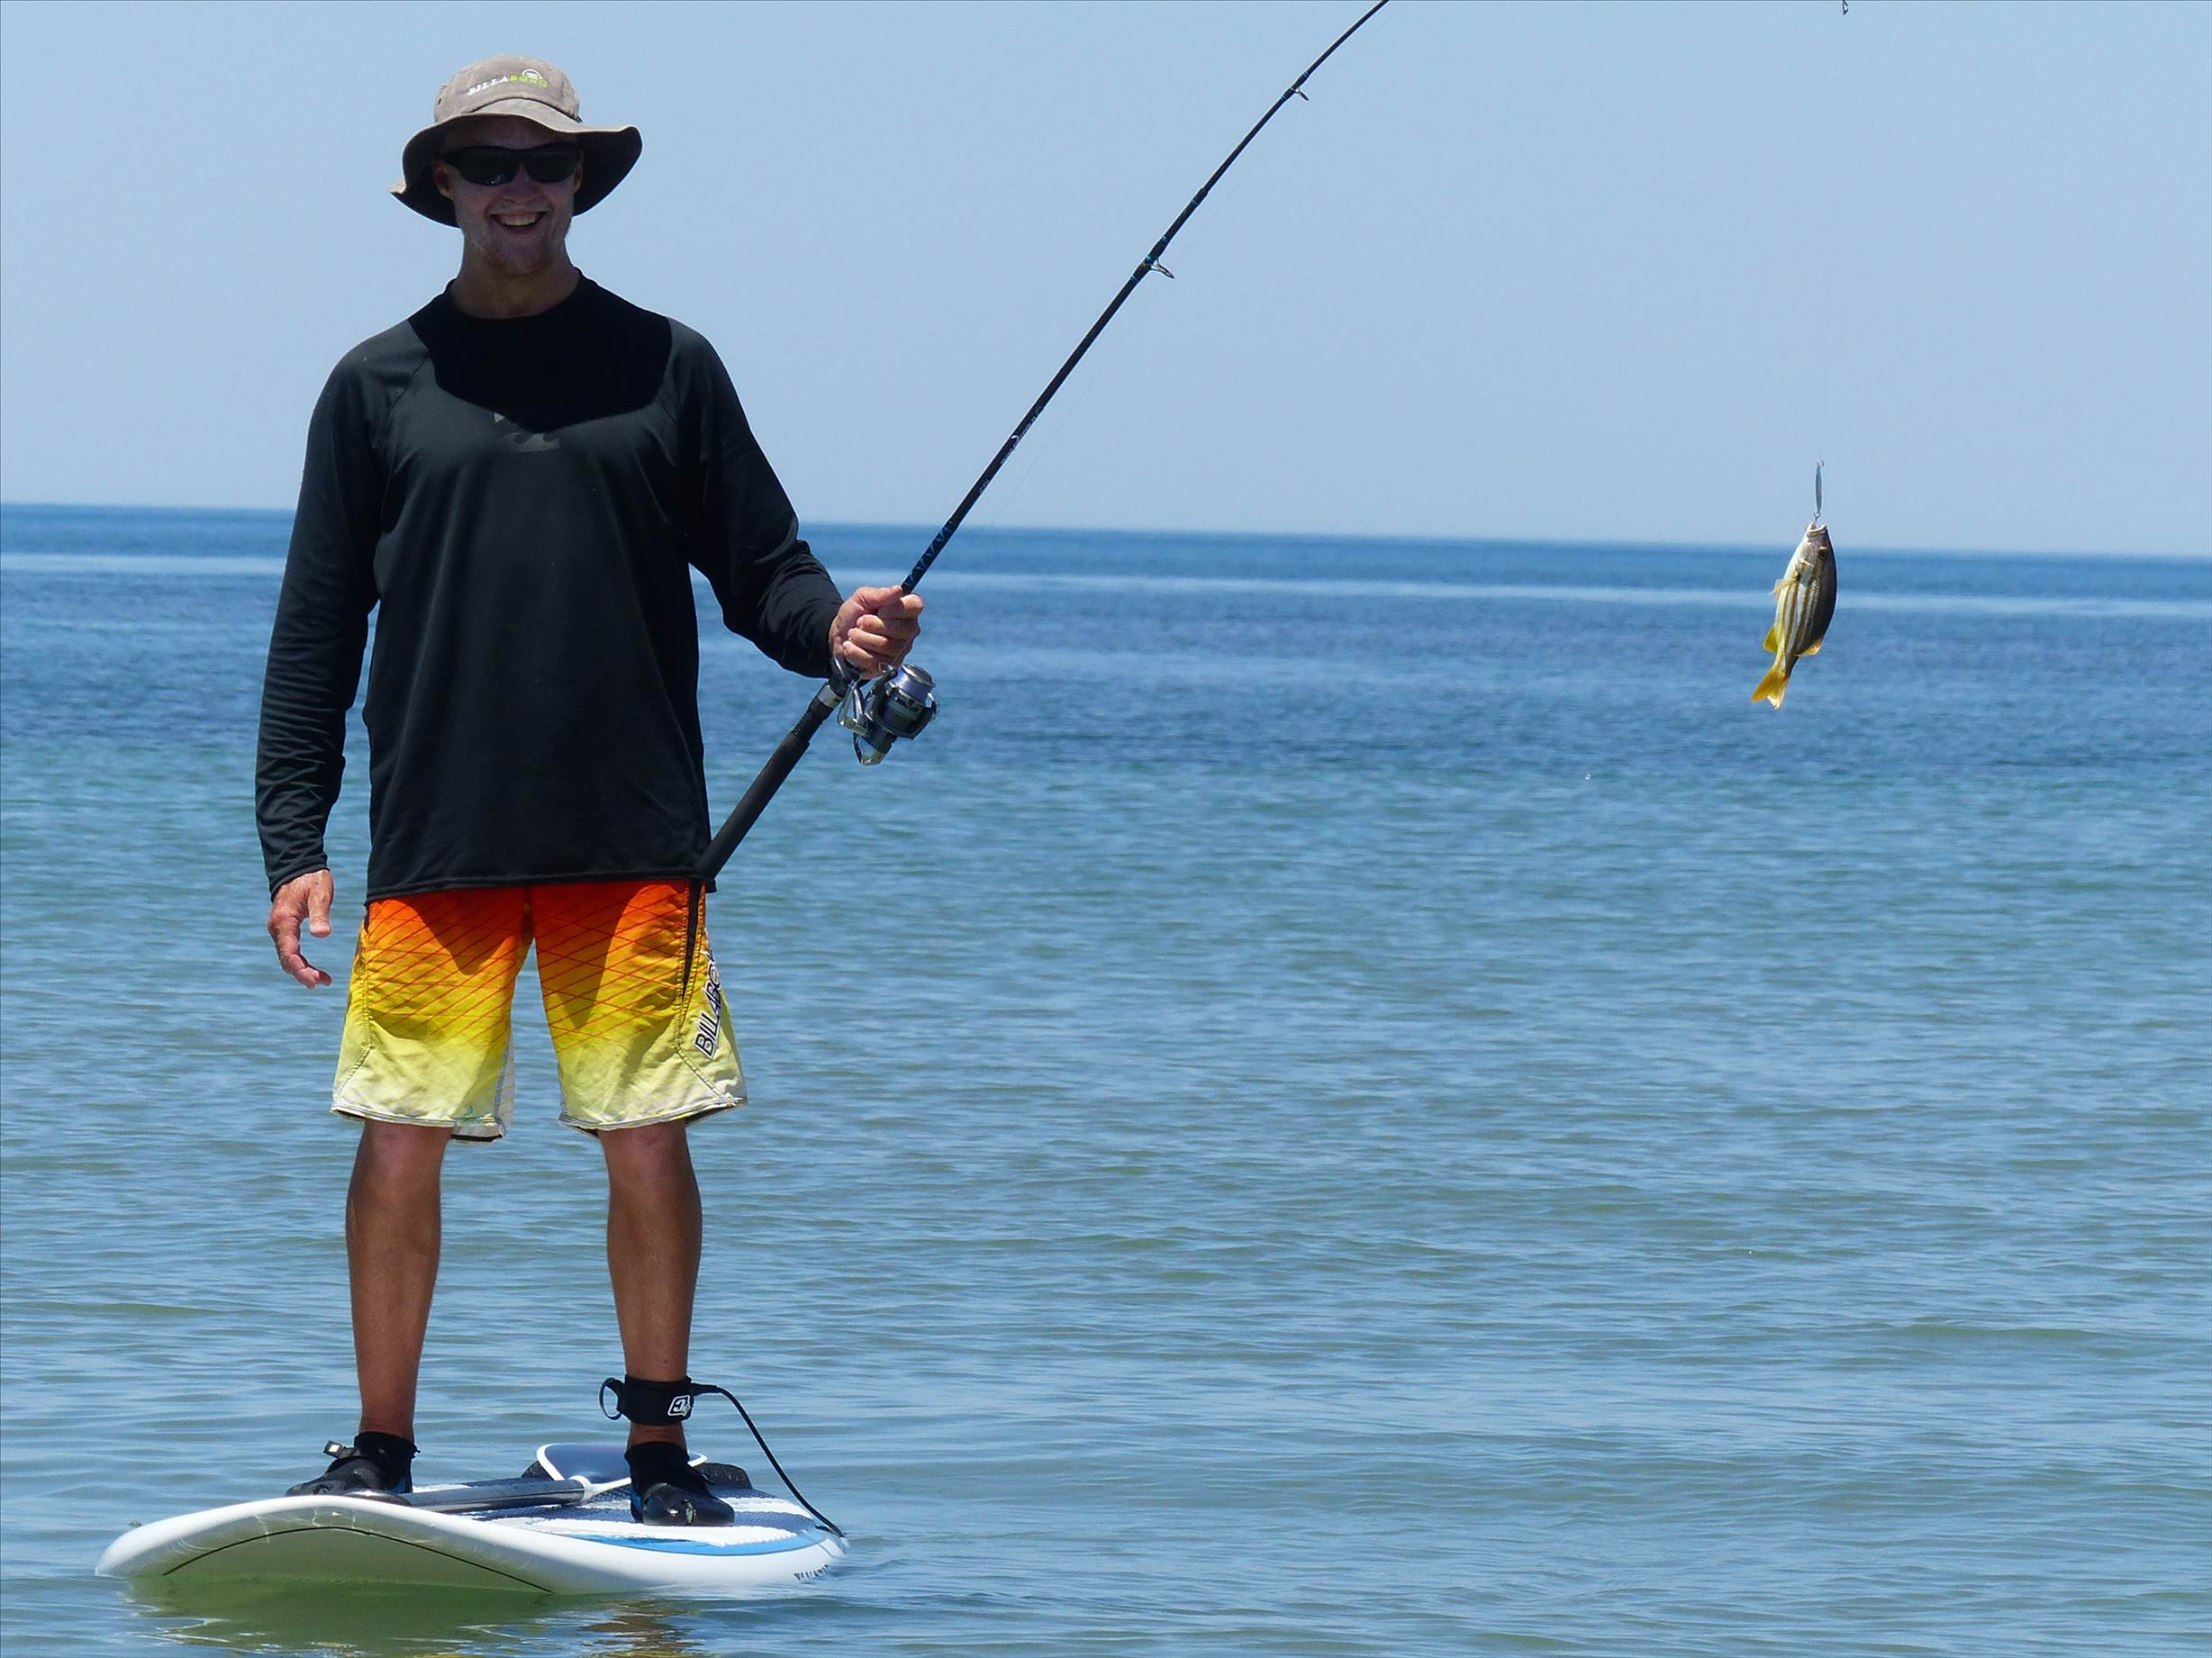 Sup fishing stand up paddle forums page 1 for Sup fishing board